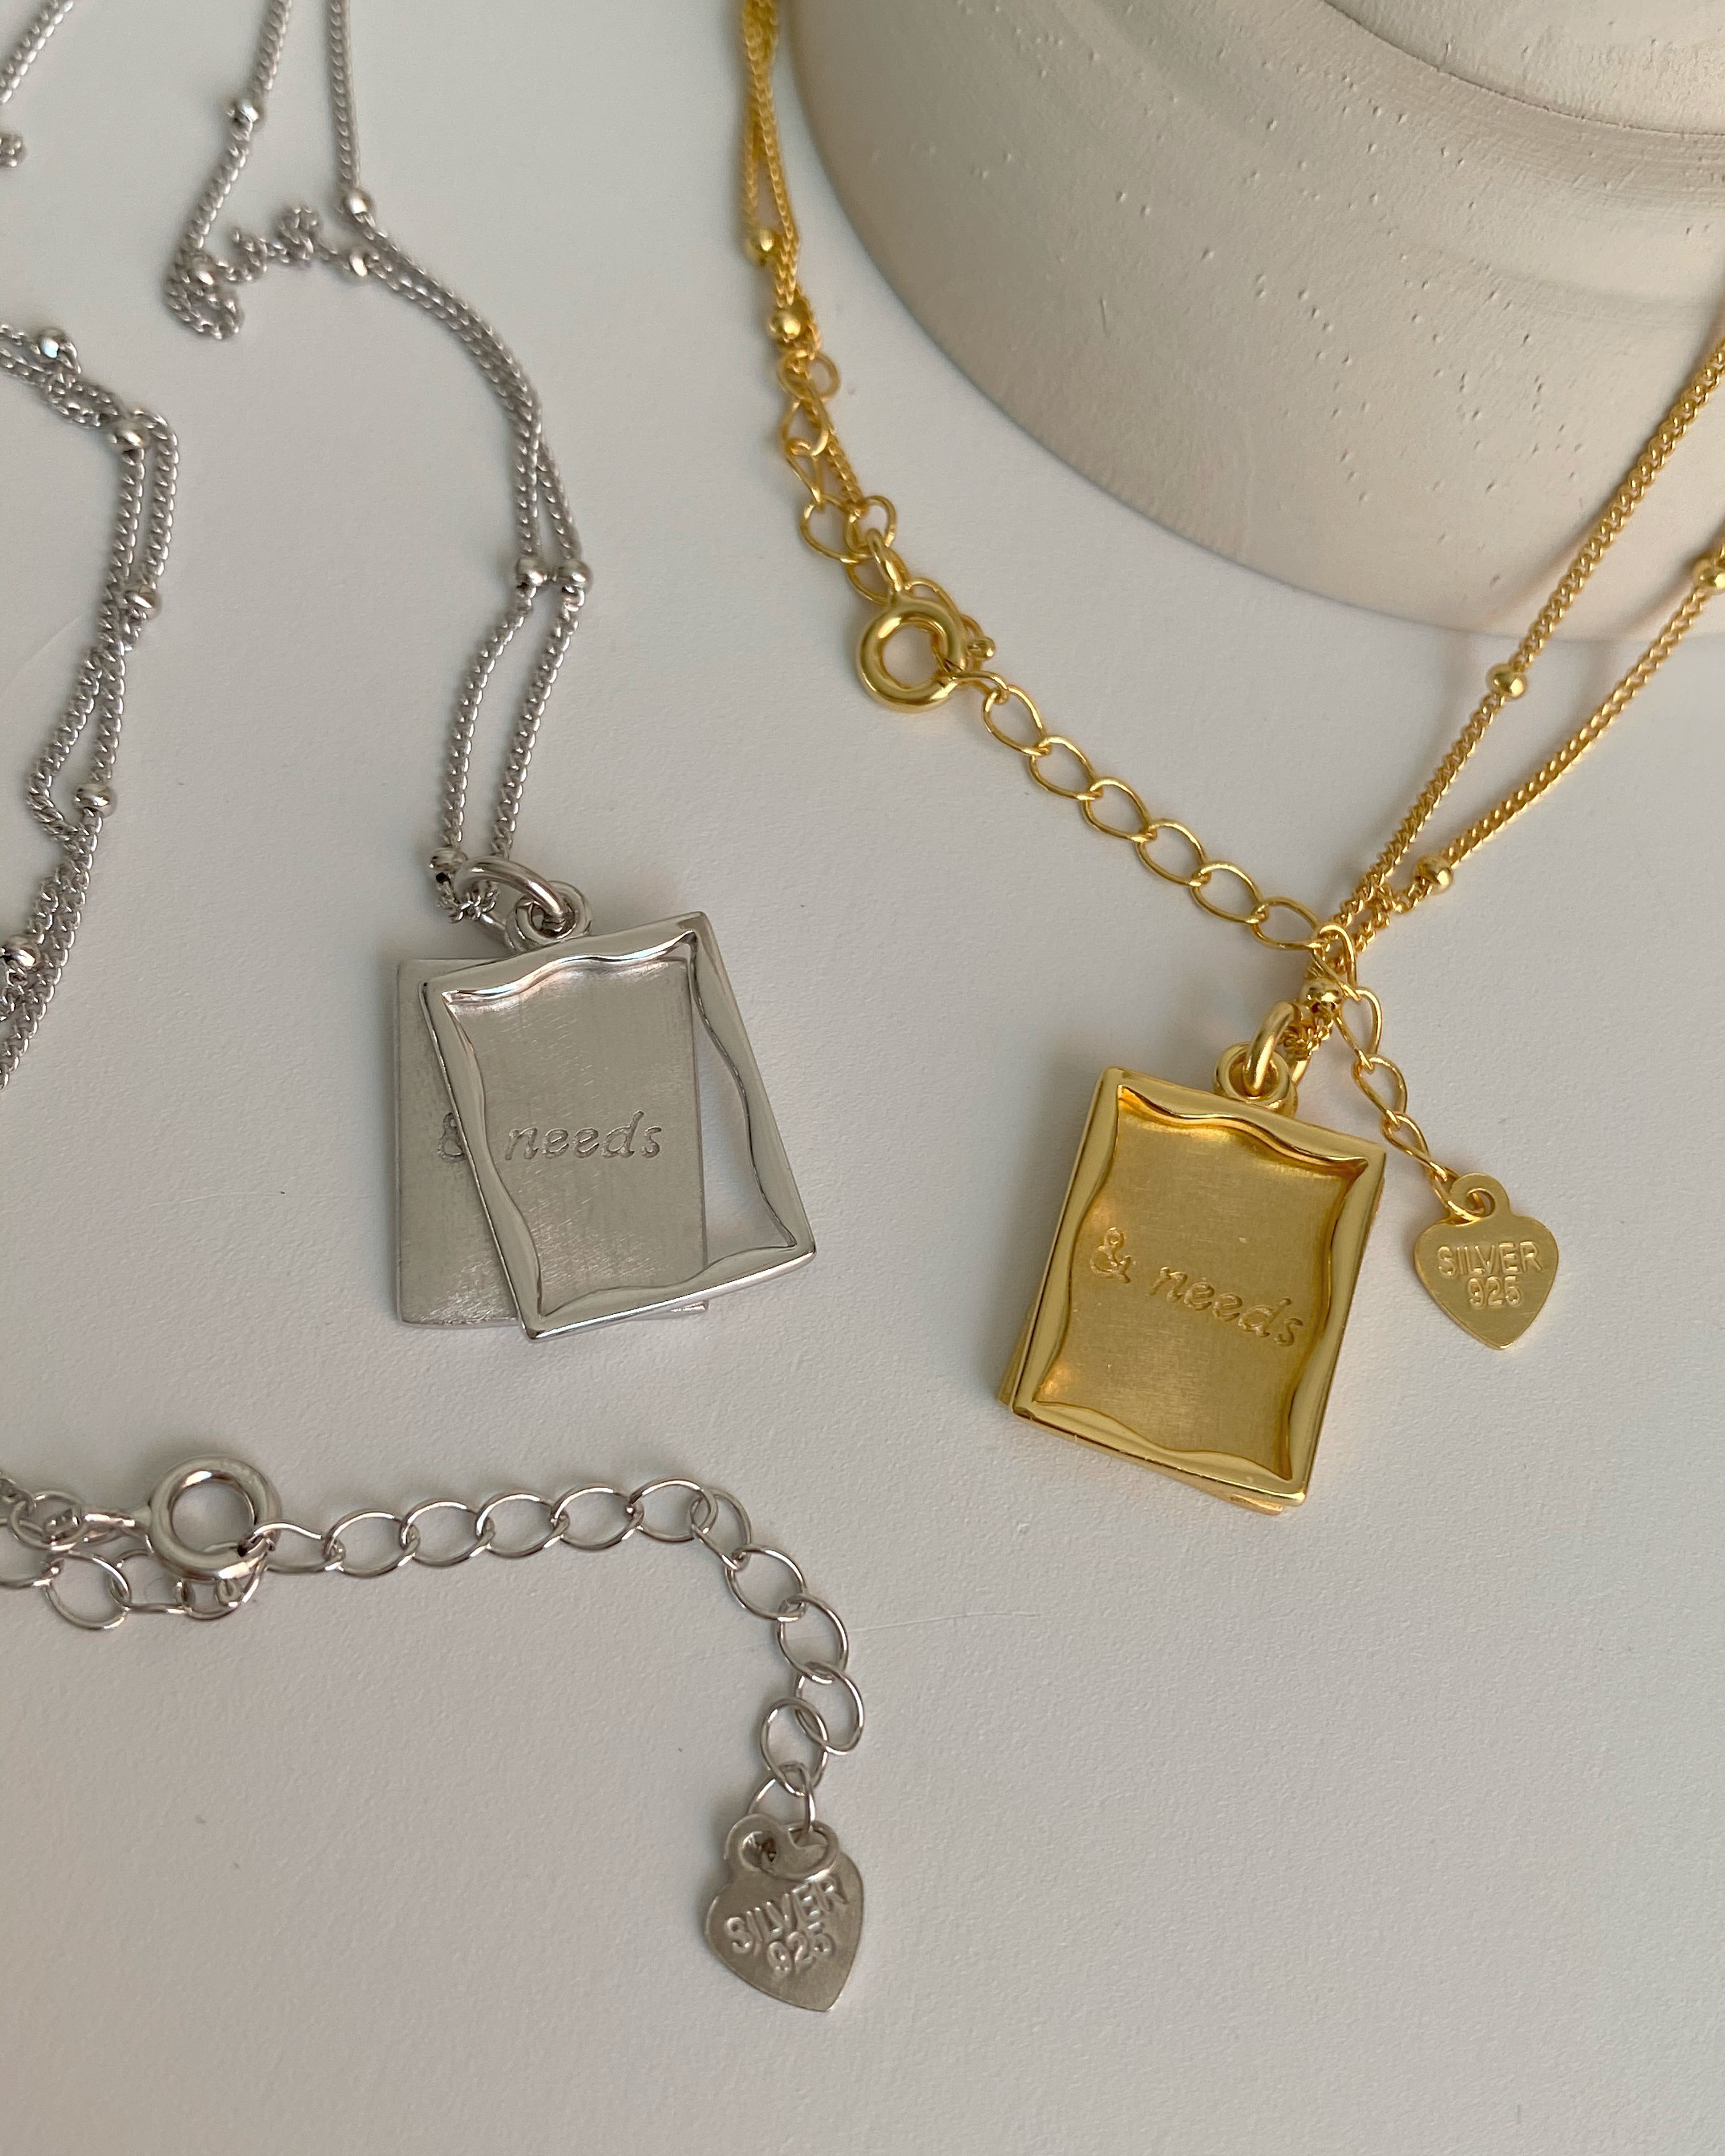 [92.5 silver] need square necklace (2 color)